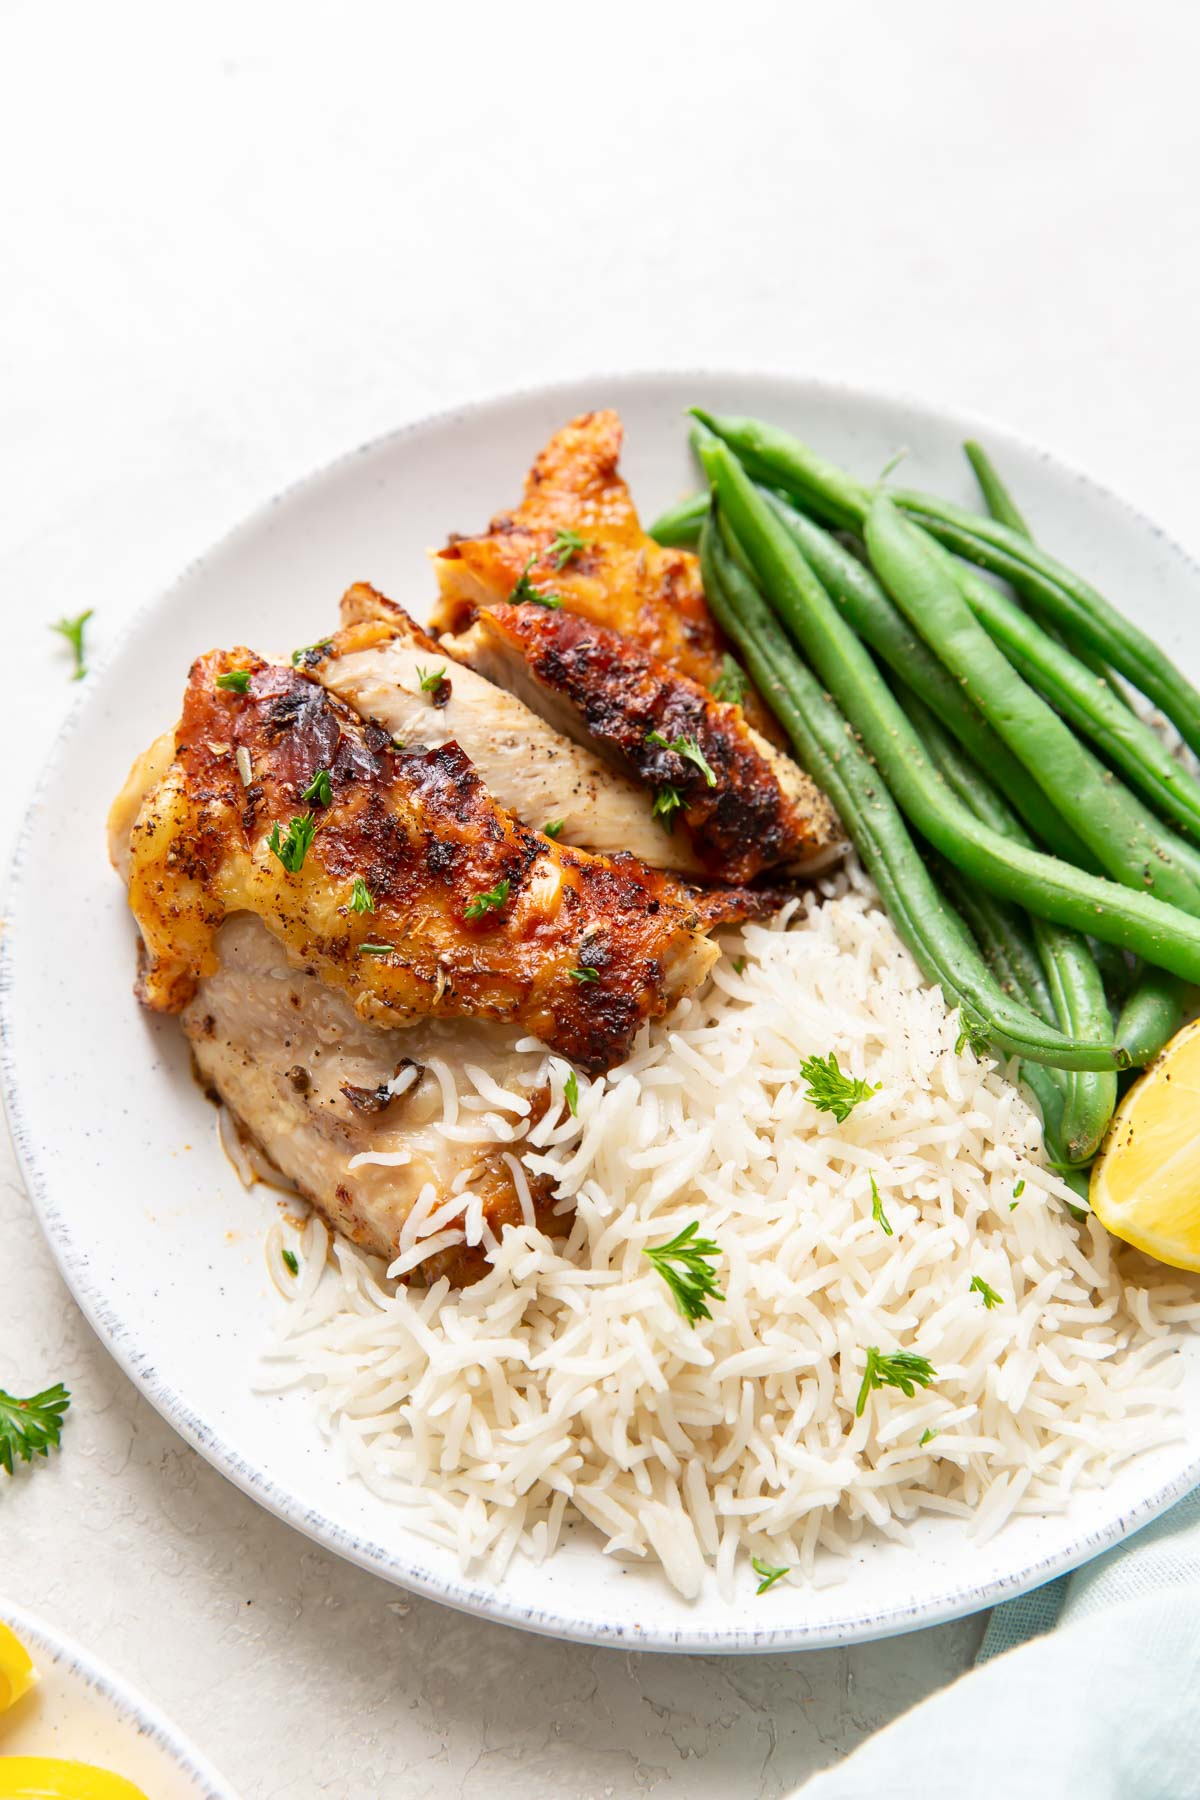 chicken served on a plate with rice and green beans